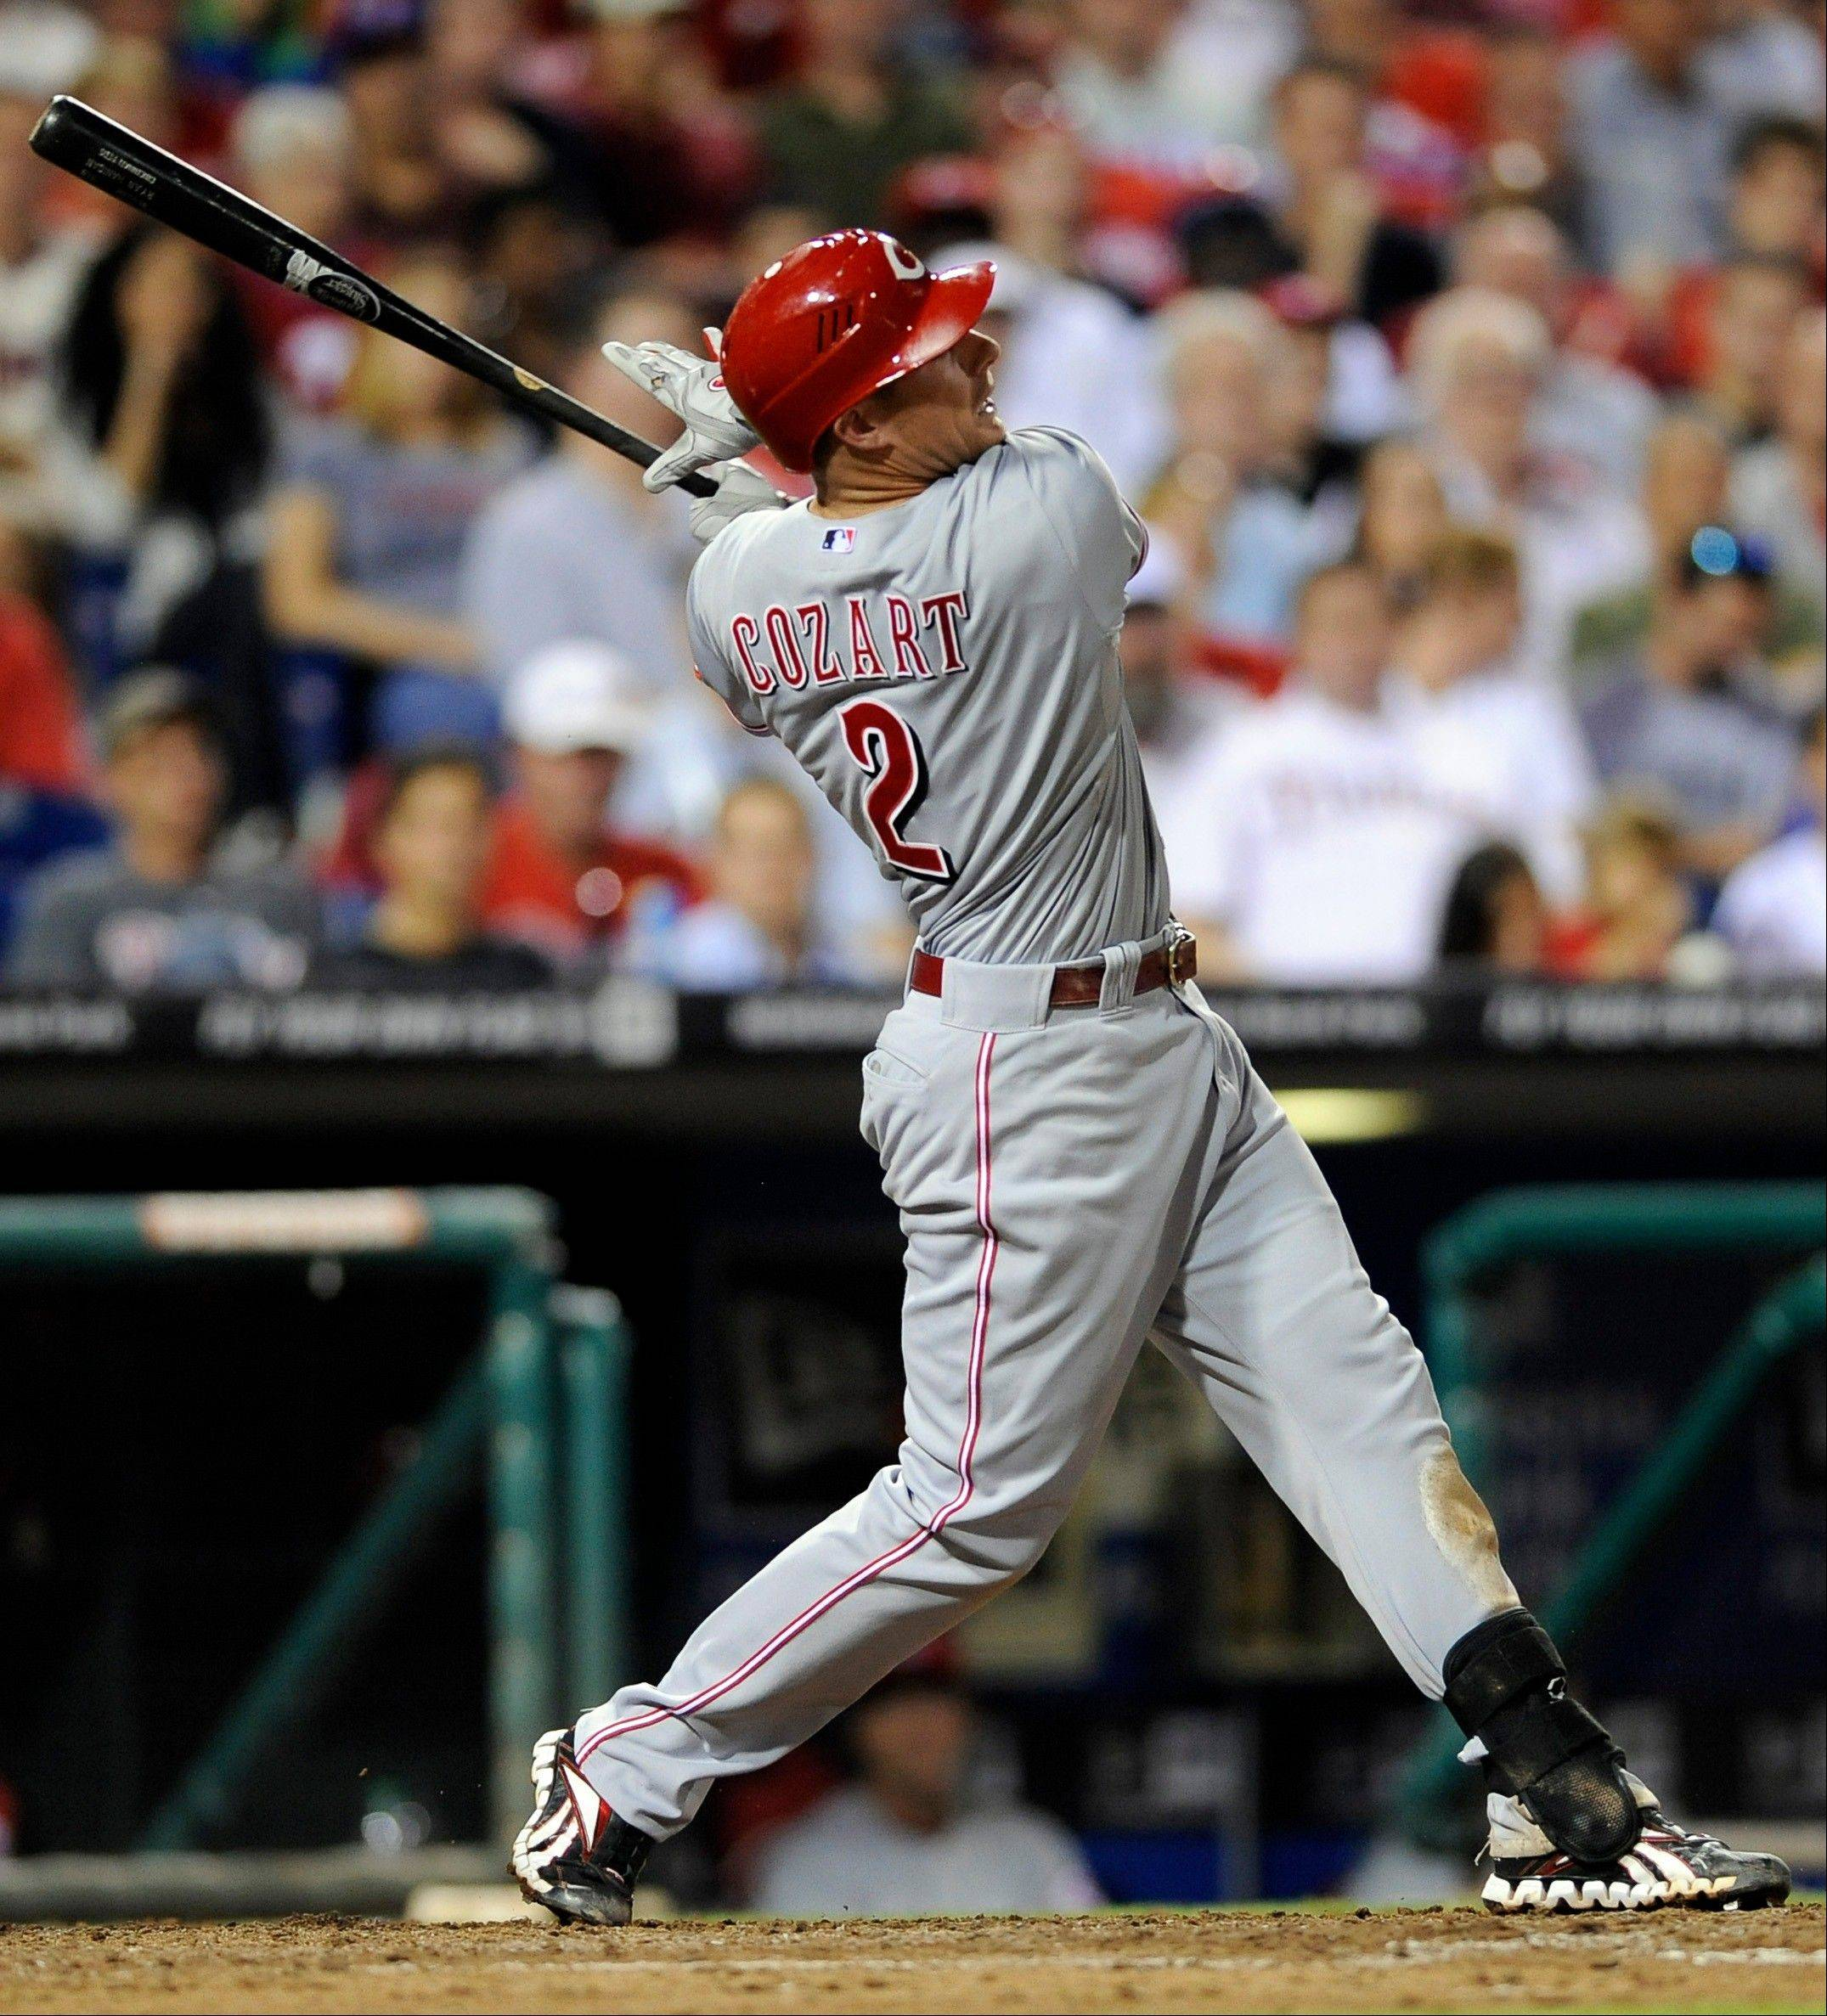 The Reds' Zack Cozart swings on a sacrifice fly that scored a run in the seventh inning Tuesday against the Philadelphia Phillies on Tuesday. In the ninth, he hit a go-ahead home run.